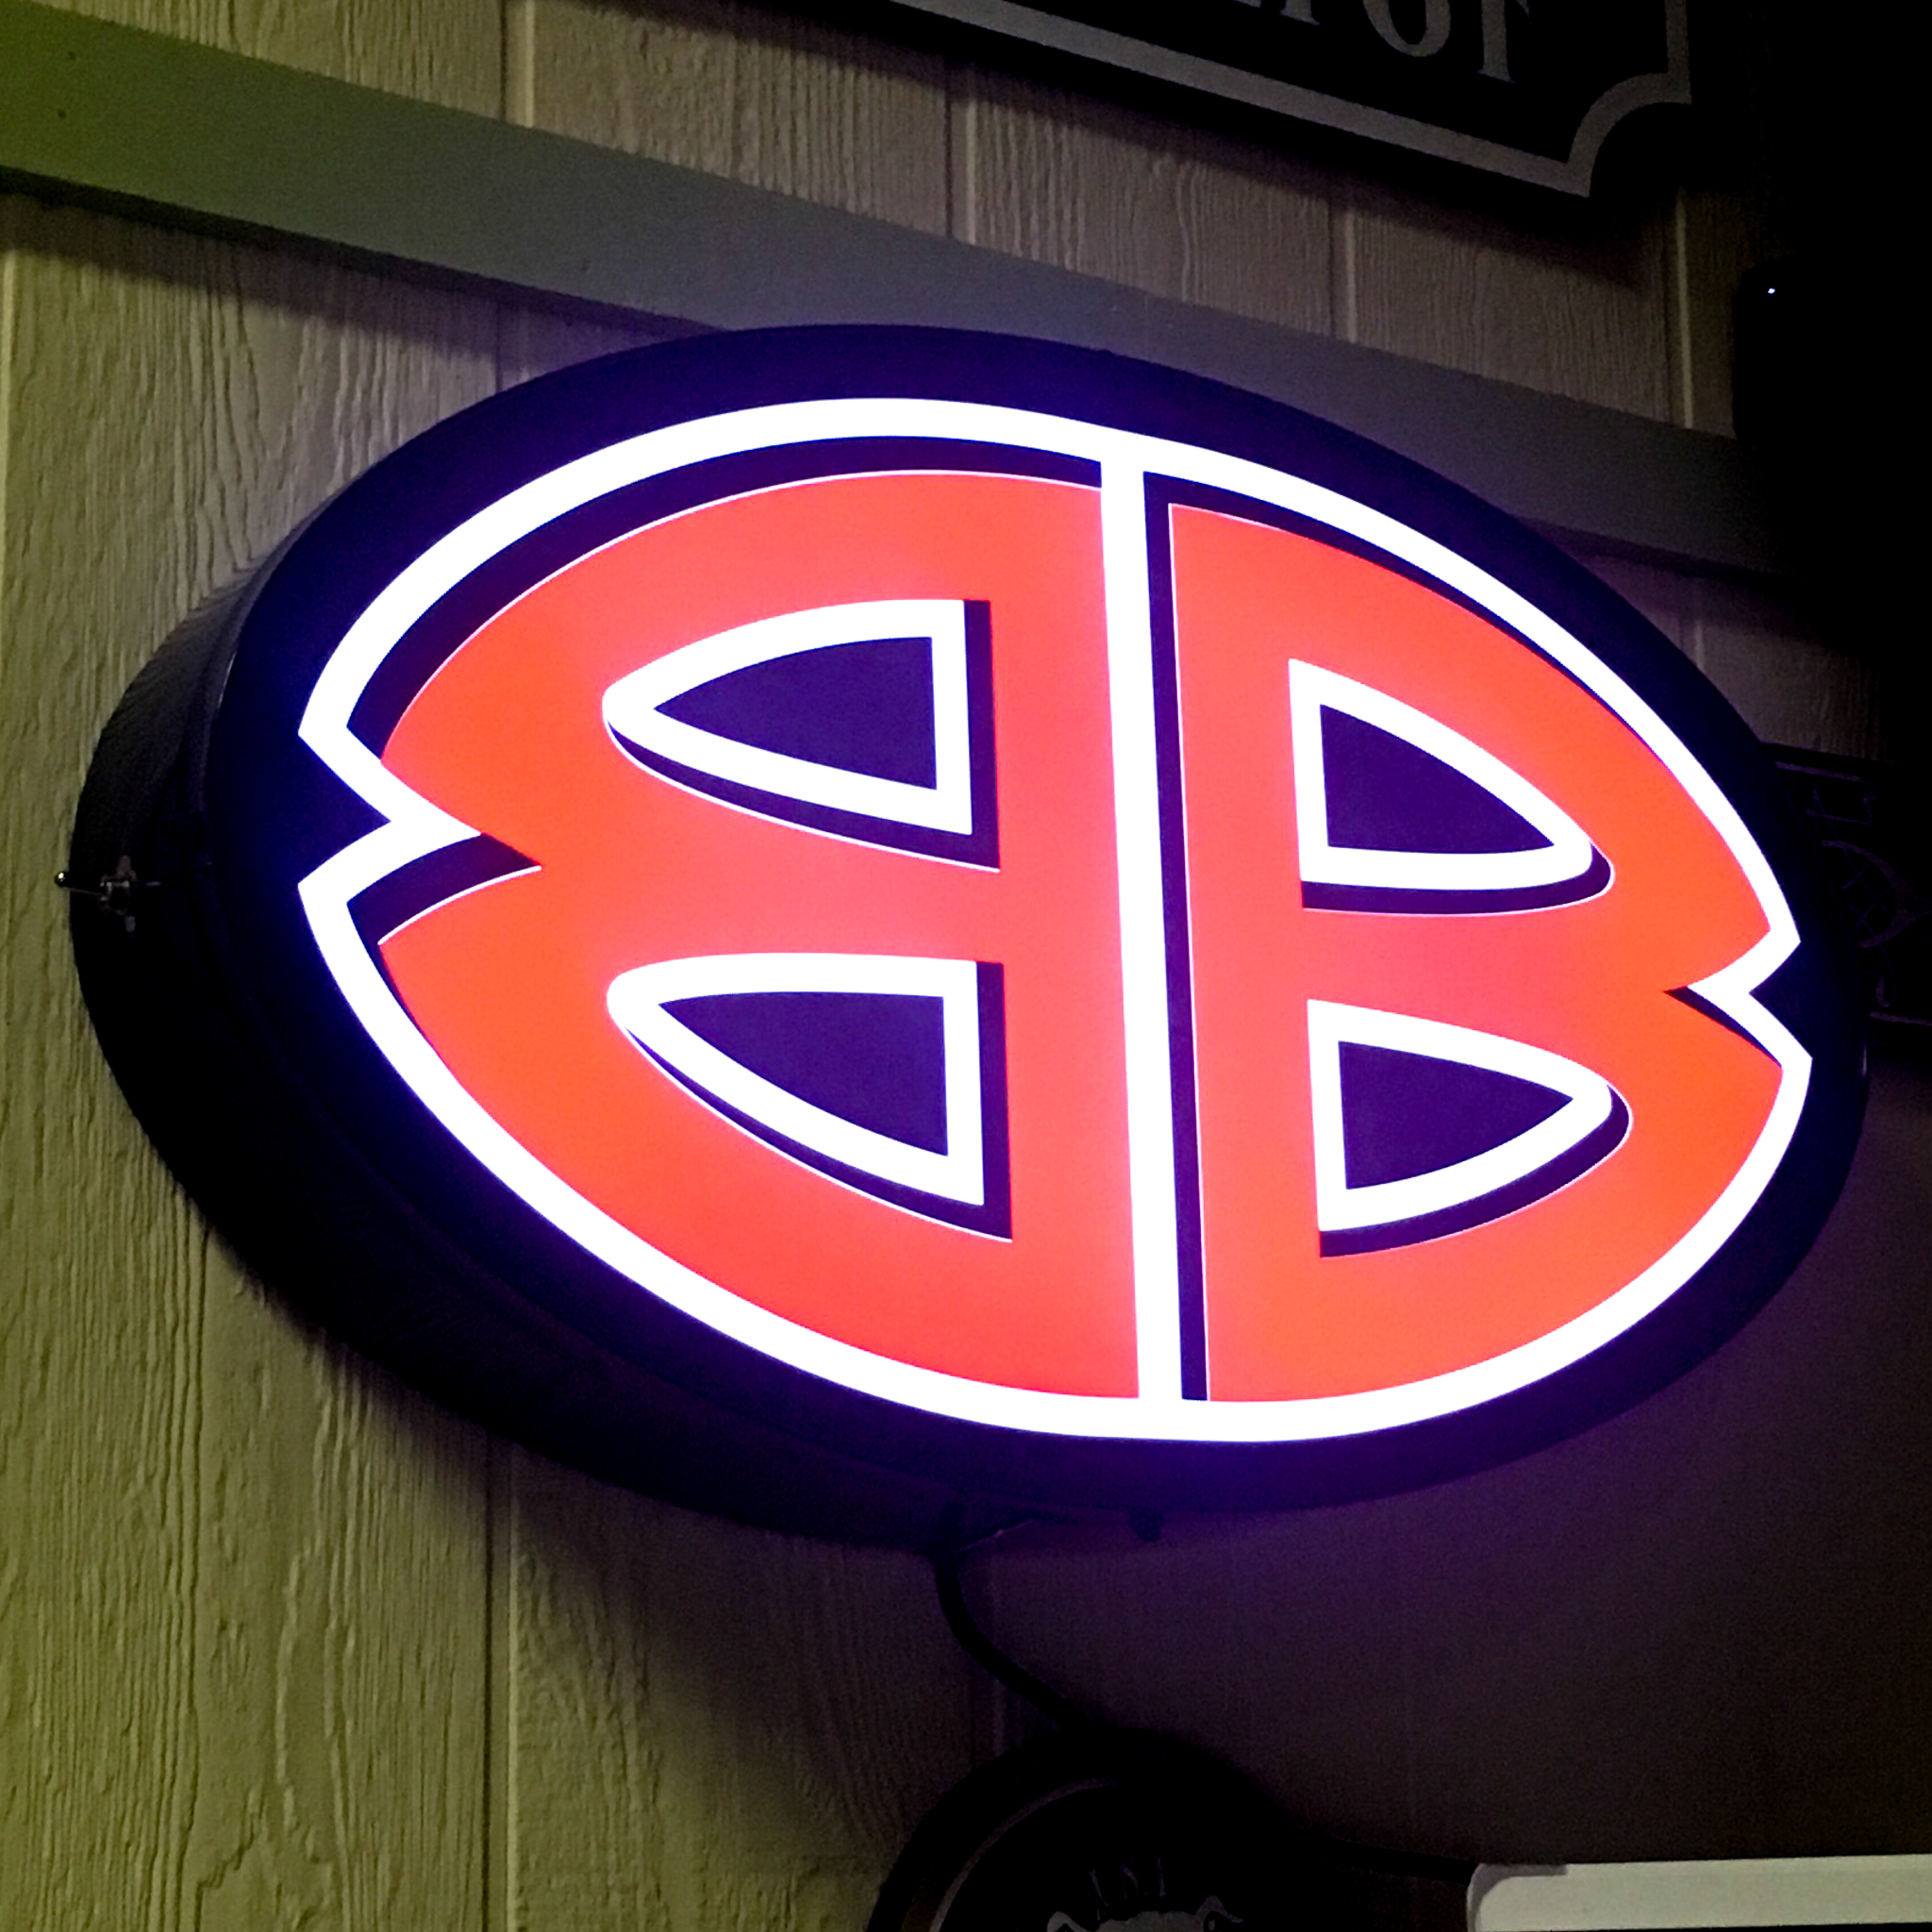 Double B LED Backlit Sign